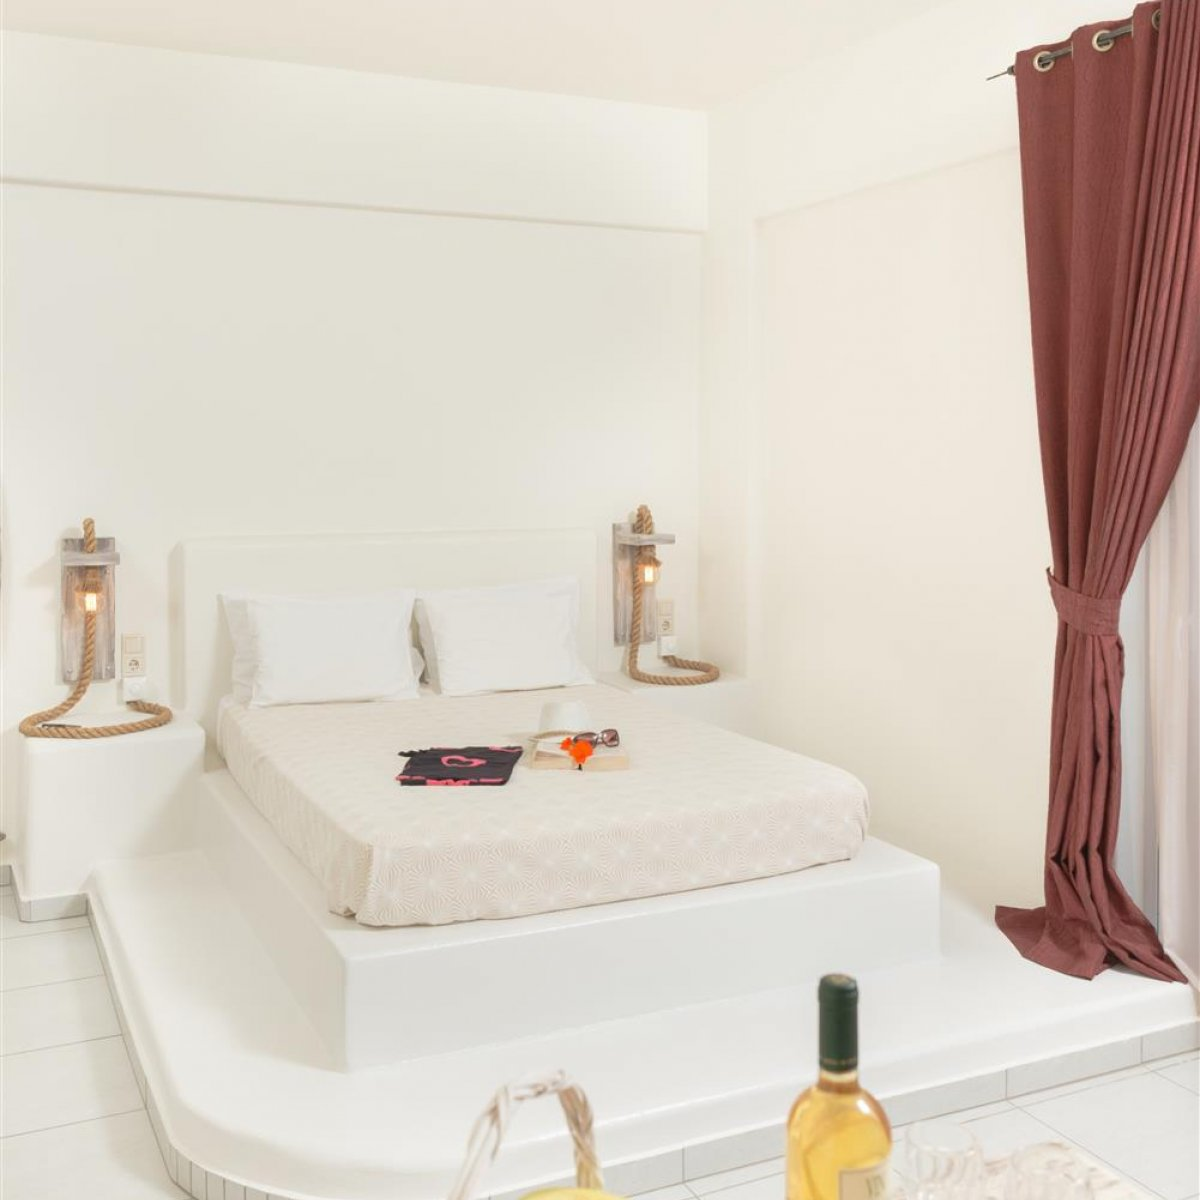 Hotel Sunshine Matala - 1 Bedroom Esthis Suite